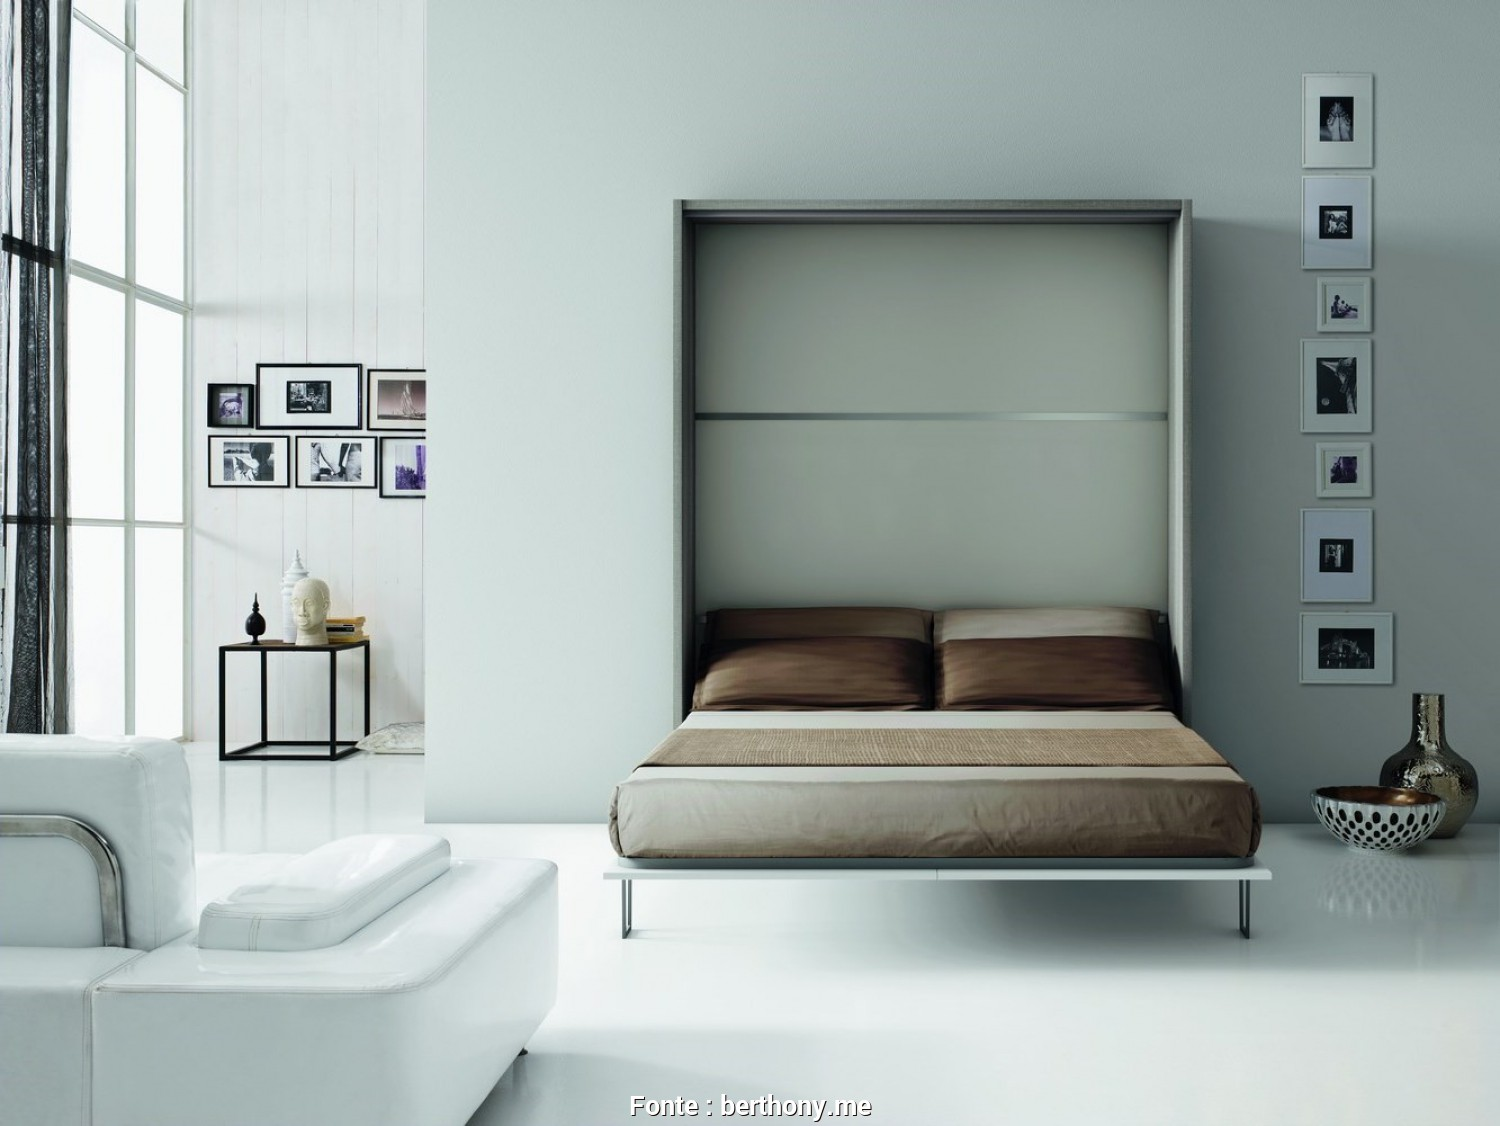 Grande 5 Ikea Hemnes Letto Matrimoniale - Keever For Congress